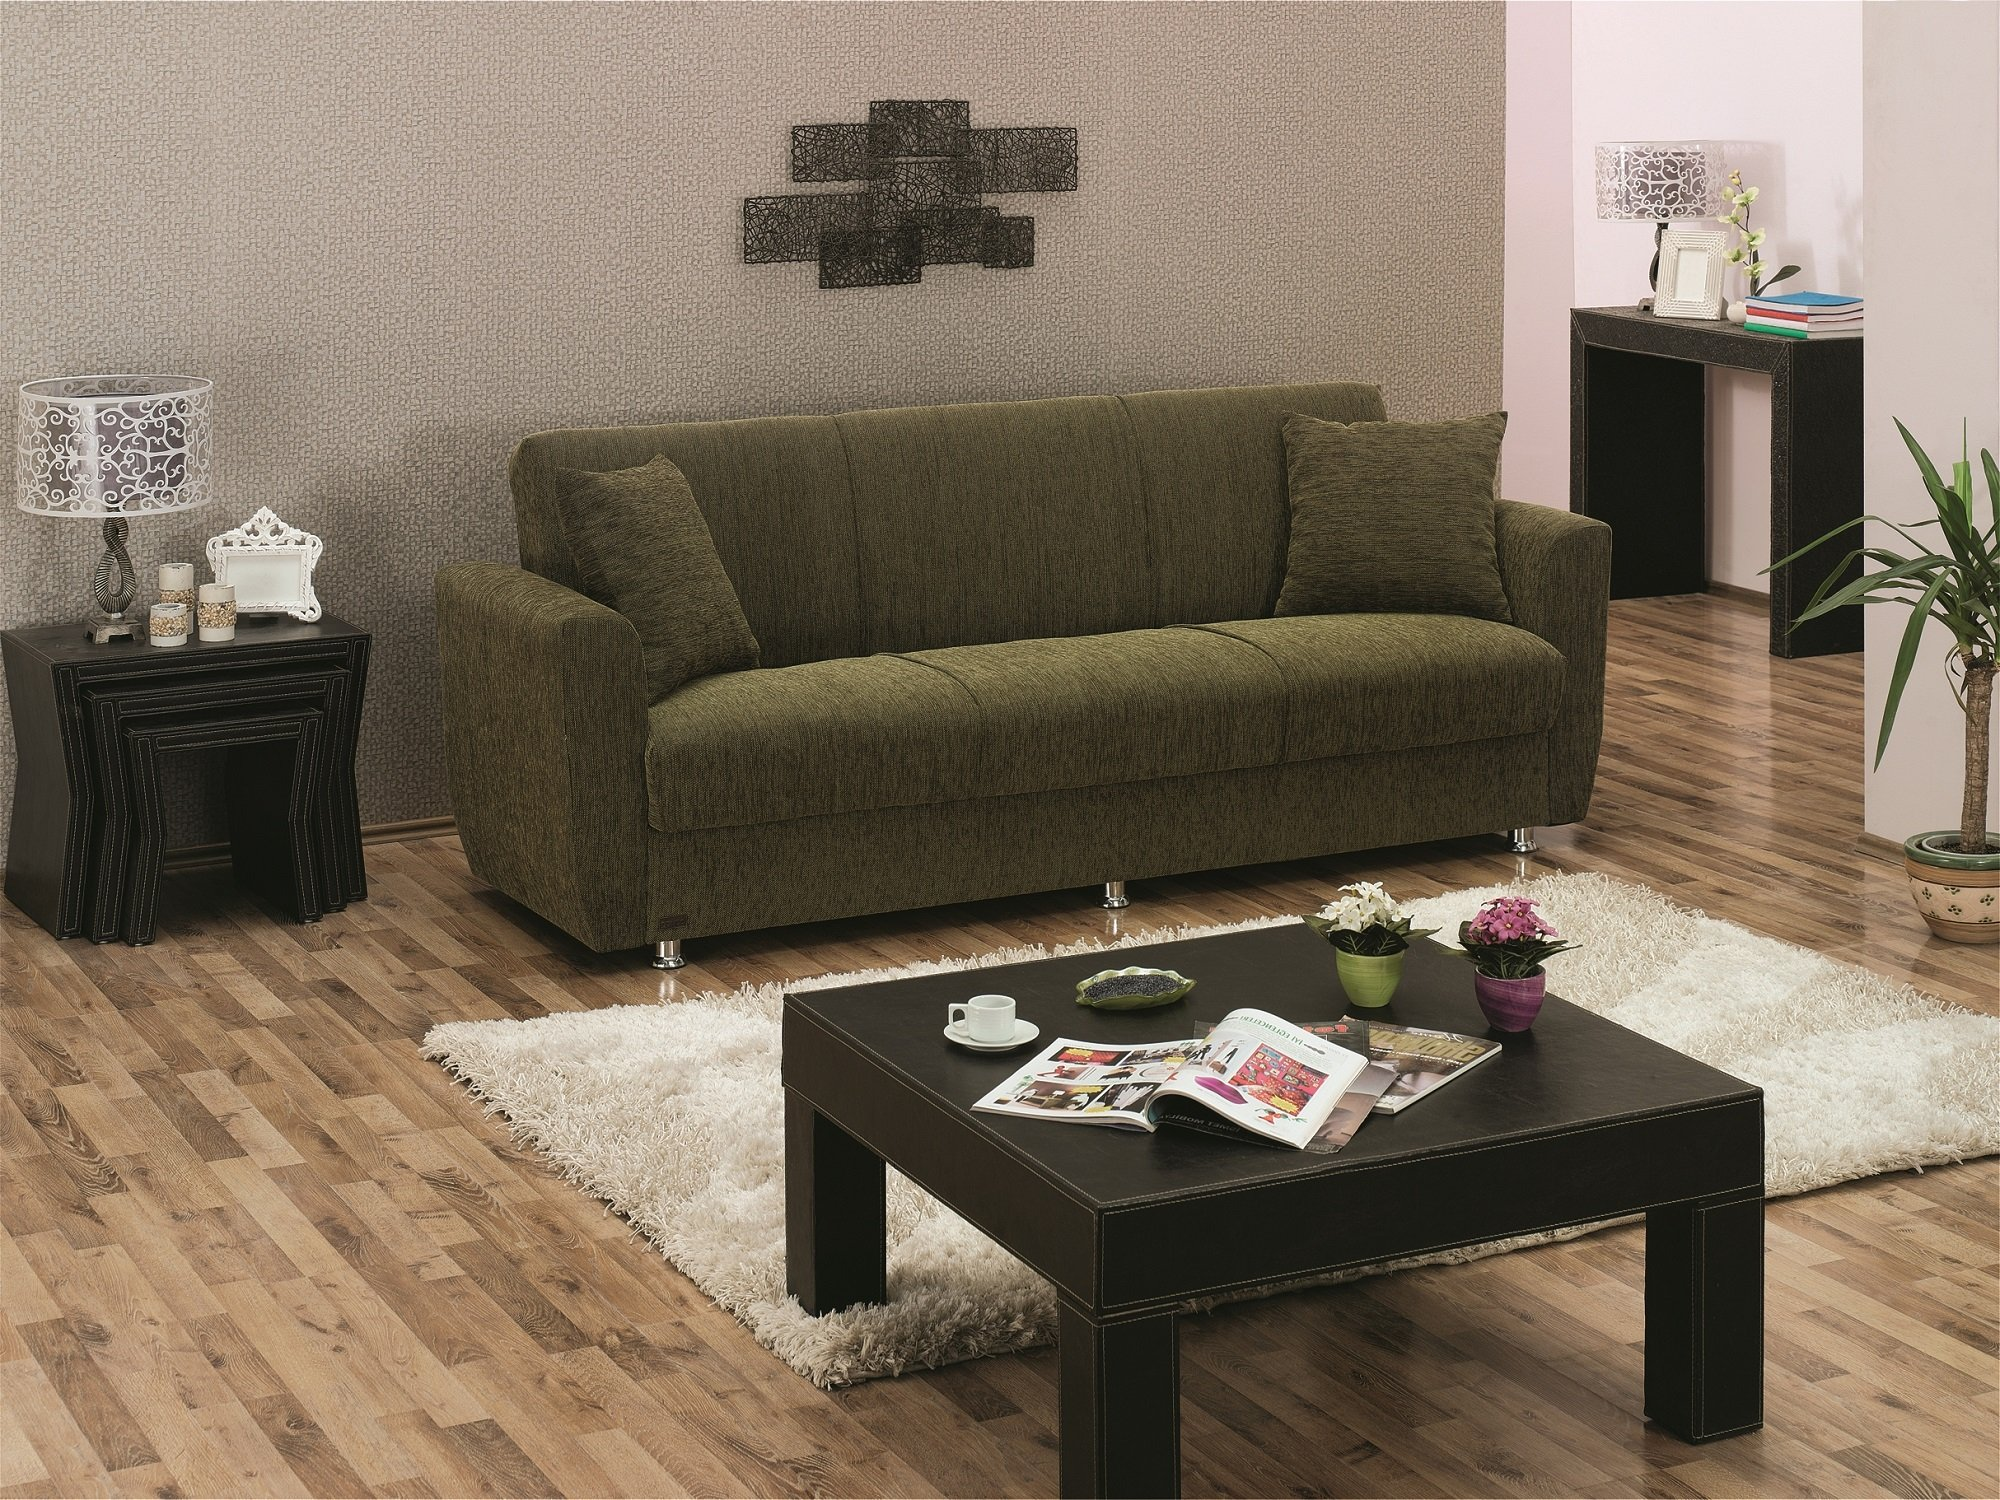 BEYAN Edison Collection Modern Fold Out Convertible Sofa Bed with Storage Space, Includes 2 Pillows, Green